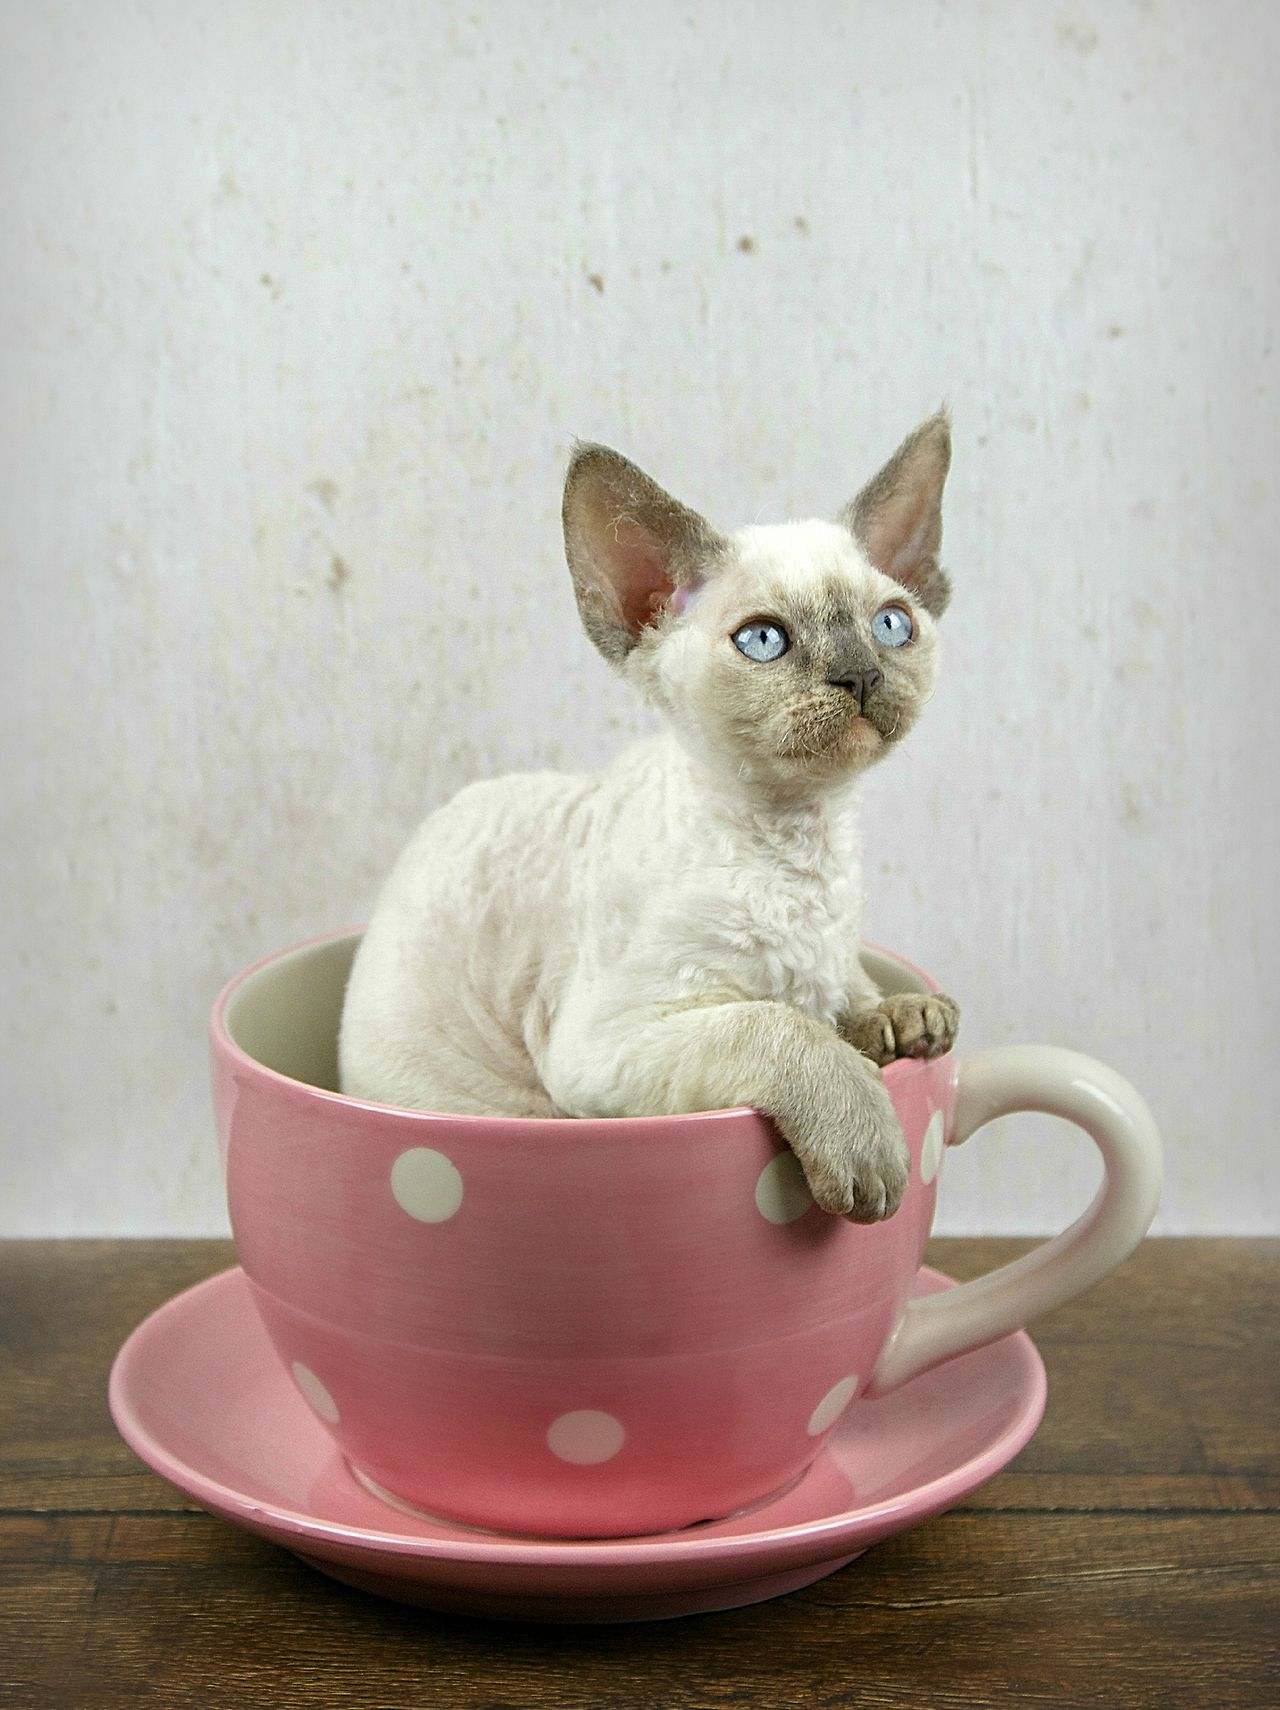 devon rex Tumblr Devon rex kittens, Devon rex, Rex cat